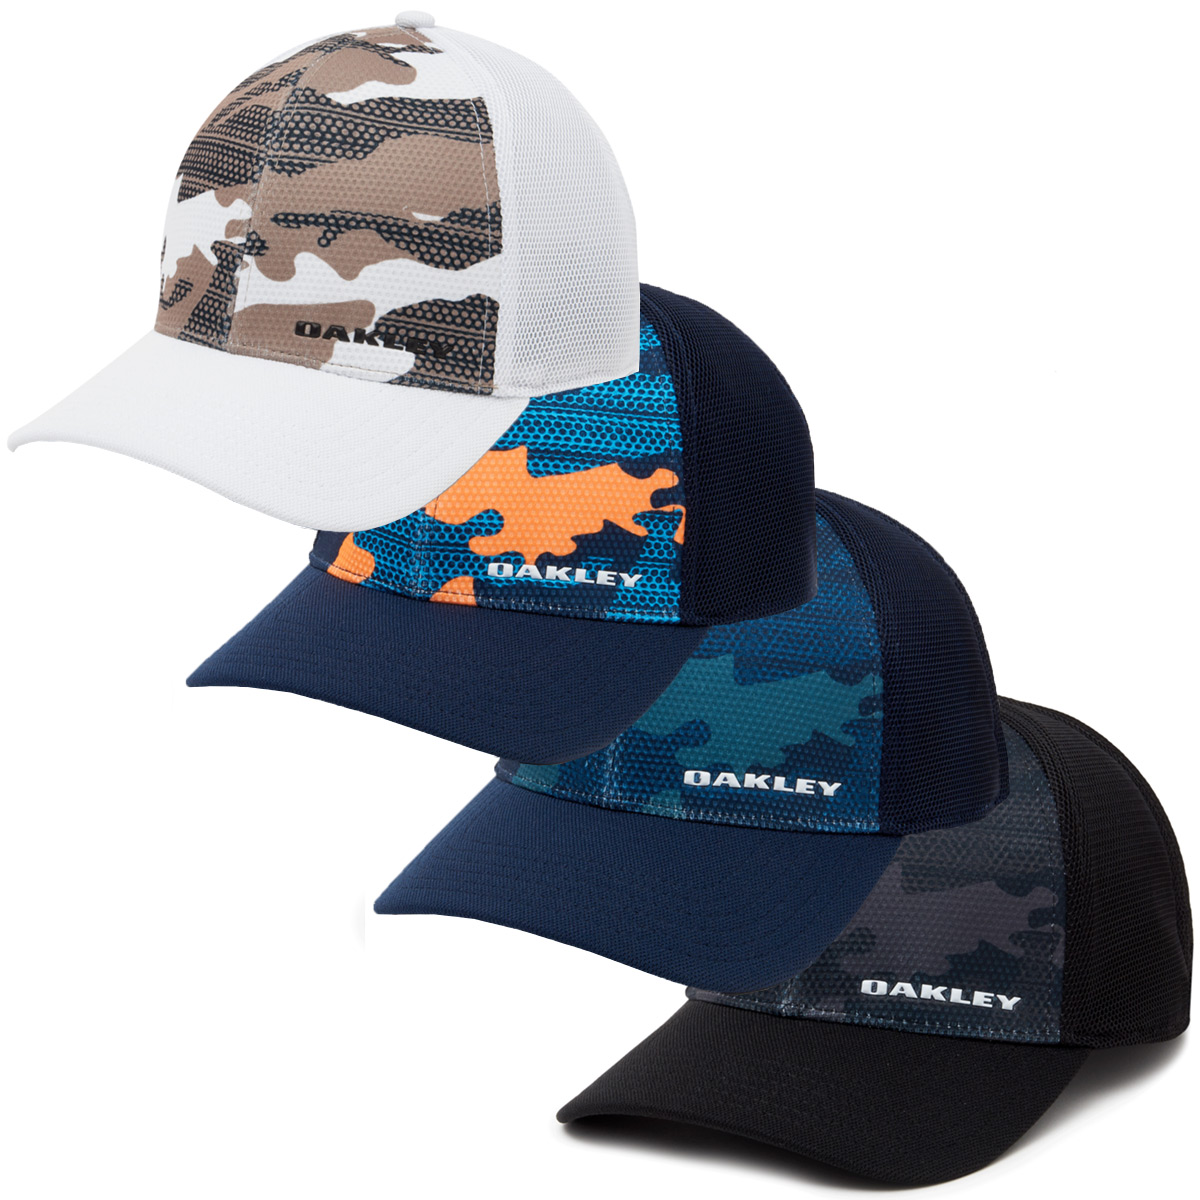 59128a61e Details about Oakley Mens Silicon Bark Trucker Print 2.0 Stretch Cap 48%  OFF RRP